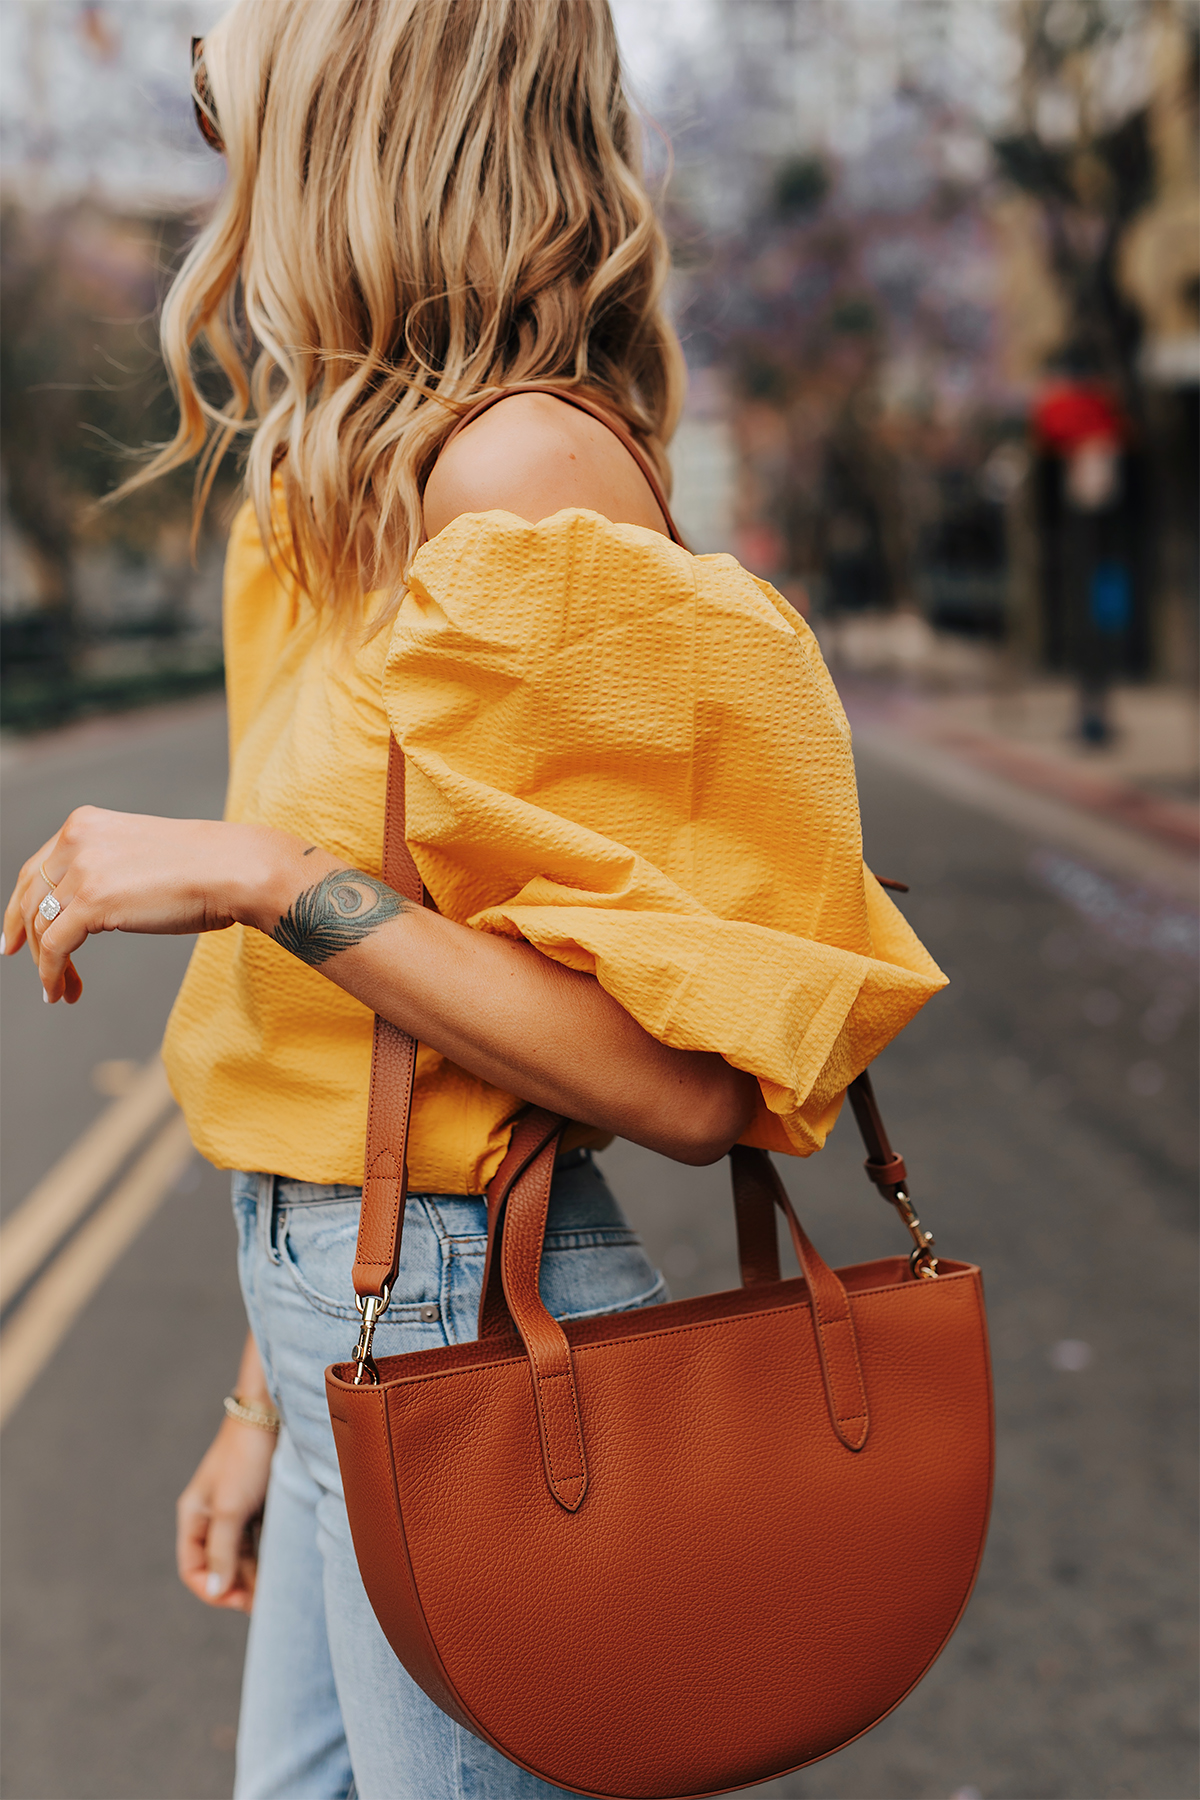 Fashion Jackson Wearing Cuyana Yellow Off the Shoulder Blouse Jeans Cuyana Tan Semi Circle Handbag